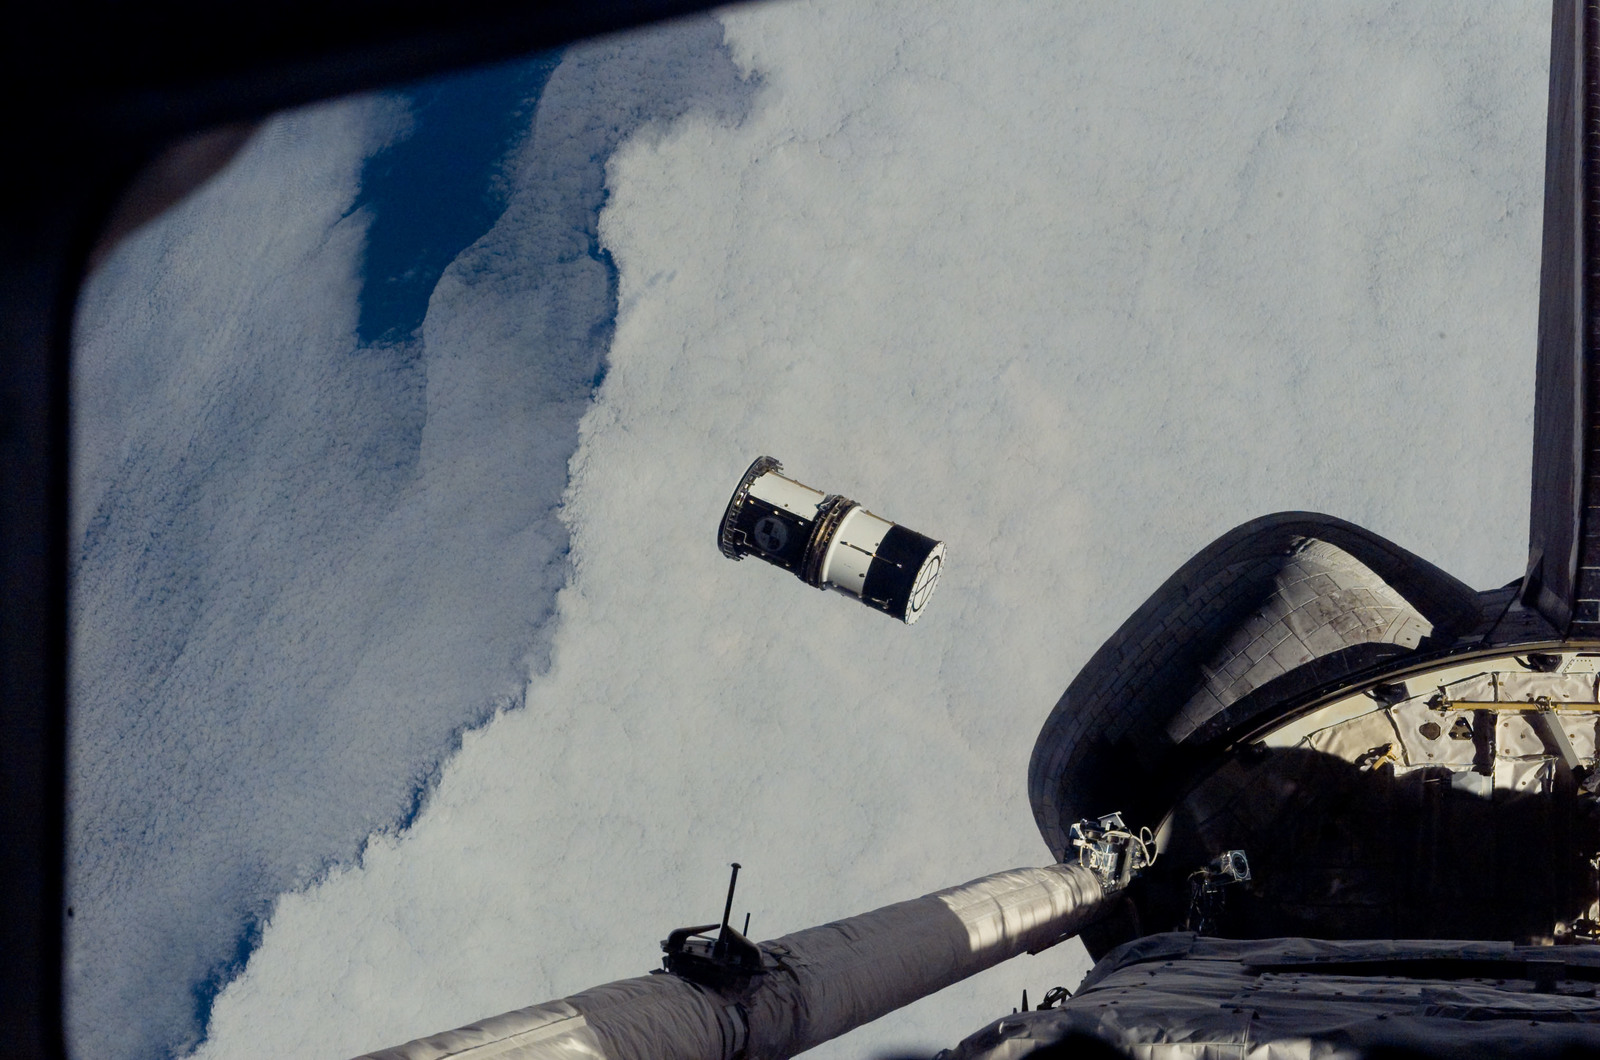 S116E07828 - STS-116 - View of ANDE release from orbiter Discovery payload bay